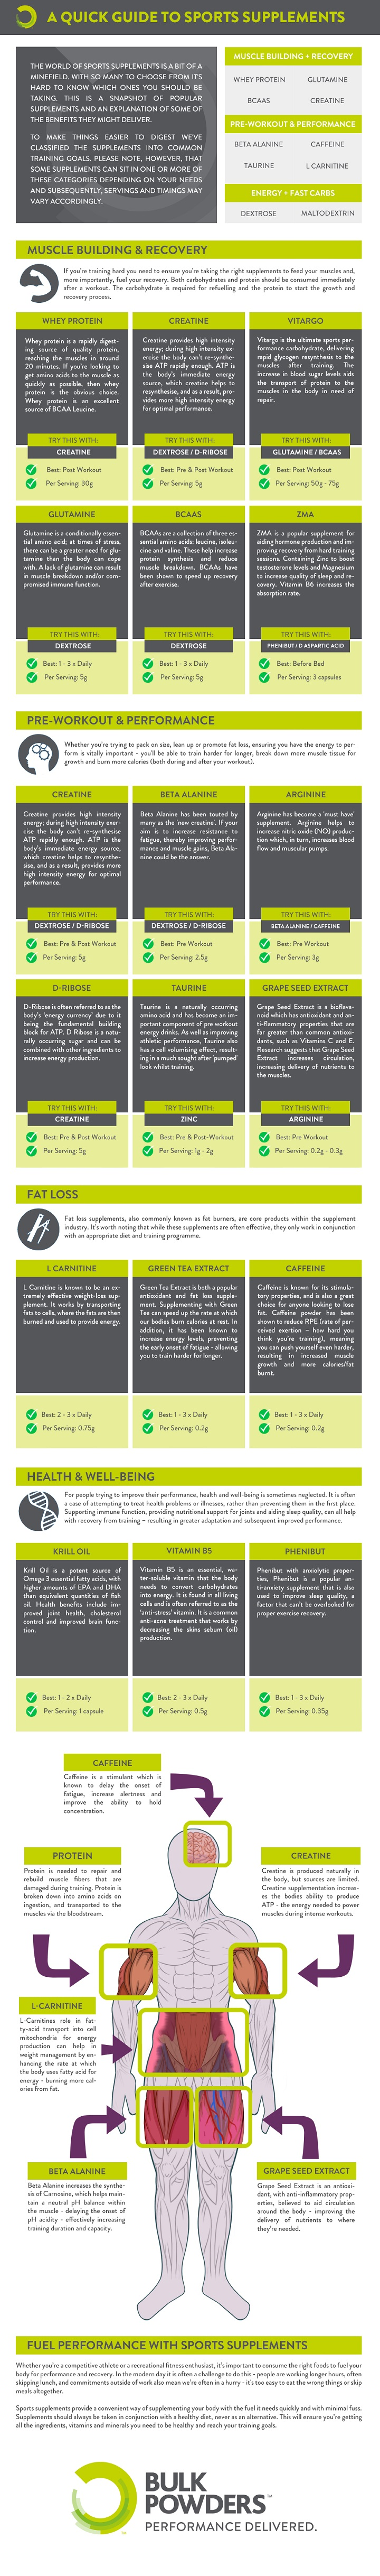 BULK POWDERS Guide to Sports Supplements Infographic